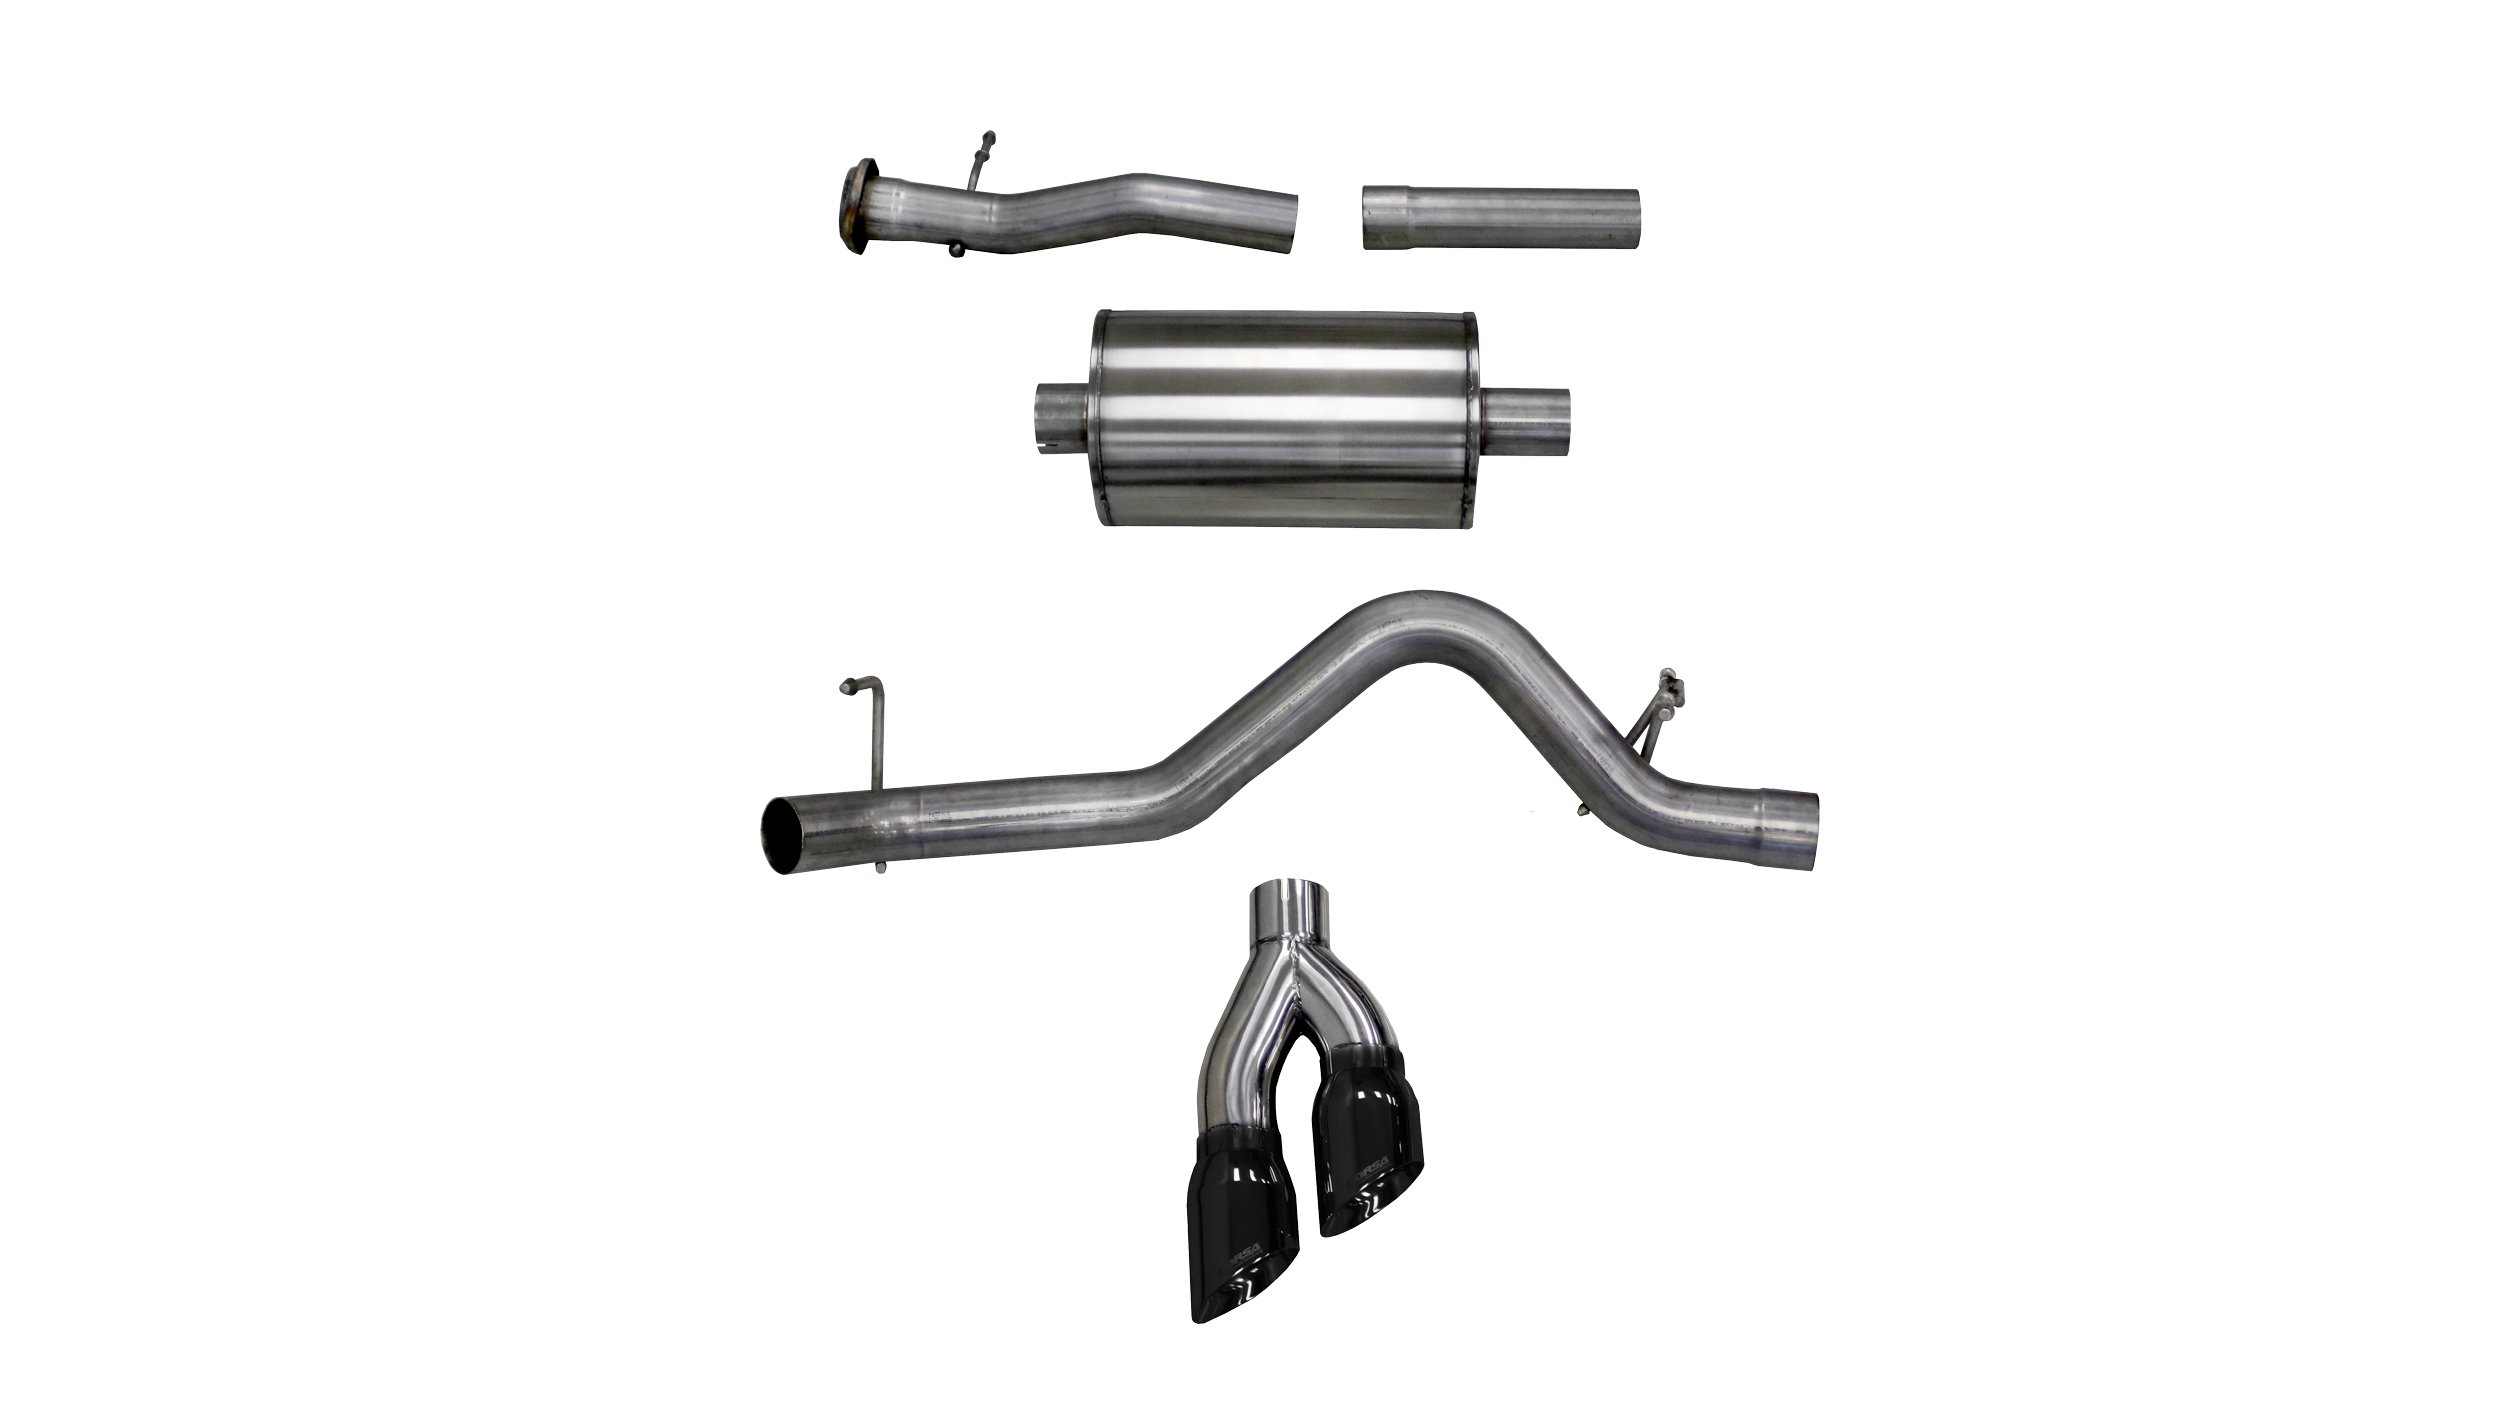 corsa 3 0 inch cat back sport single side exit exhaust 4 0 inch black tips 17 present colorado canyon 3 6l v6 128 inch 140 5 inch wheelbase stainless